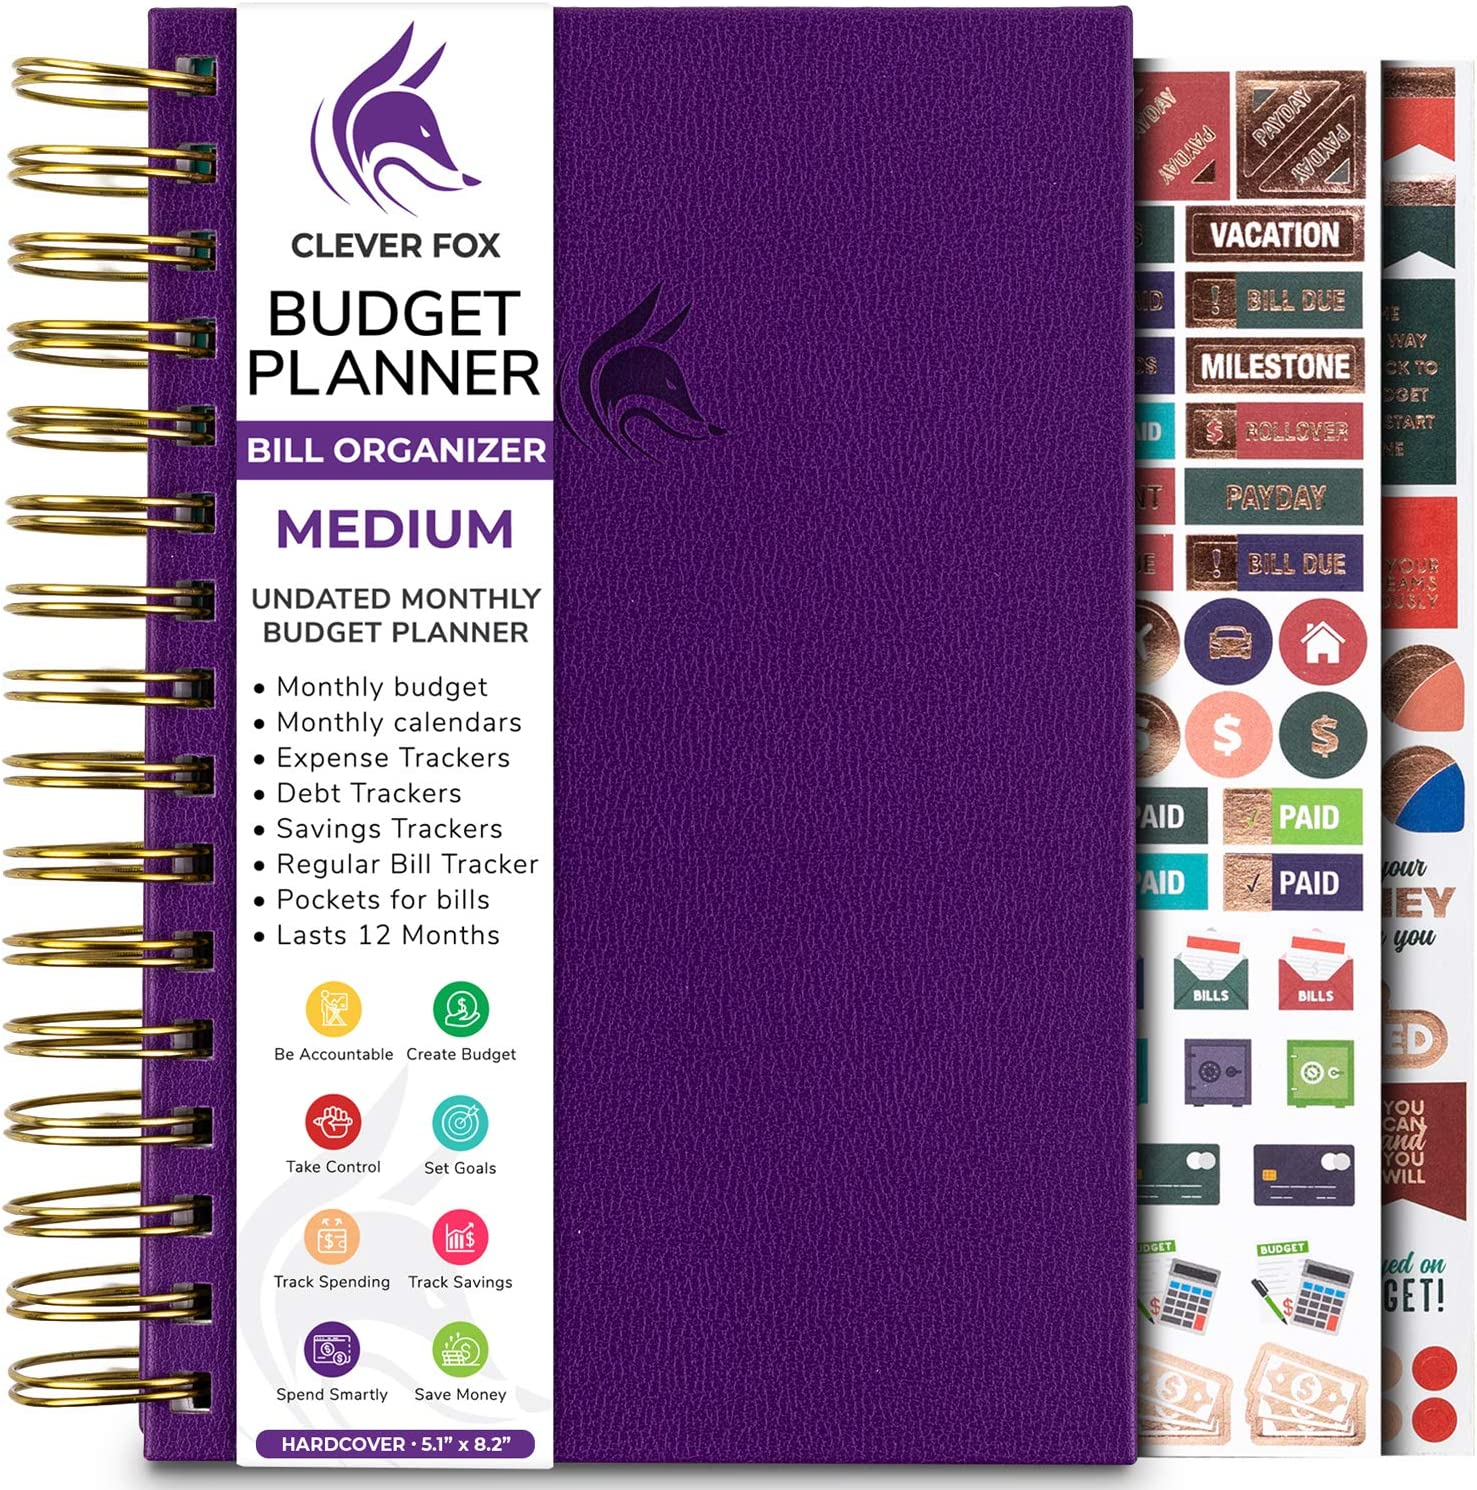 Clever Fox Budget Planner & Monthly Bill Organizer with Pockets. Expense Tracker Notebook, Budgeting Journal and Financial Planner Budget Book to Control Your Money. Medium (5.1